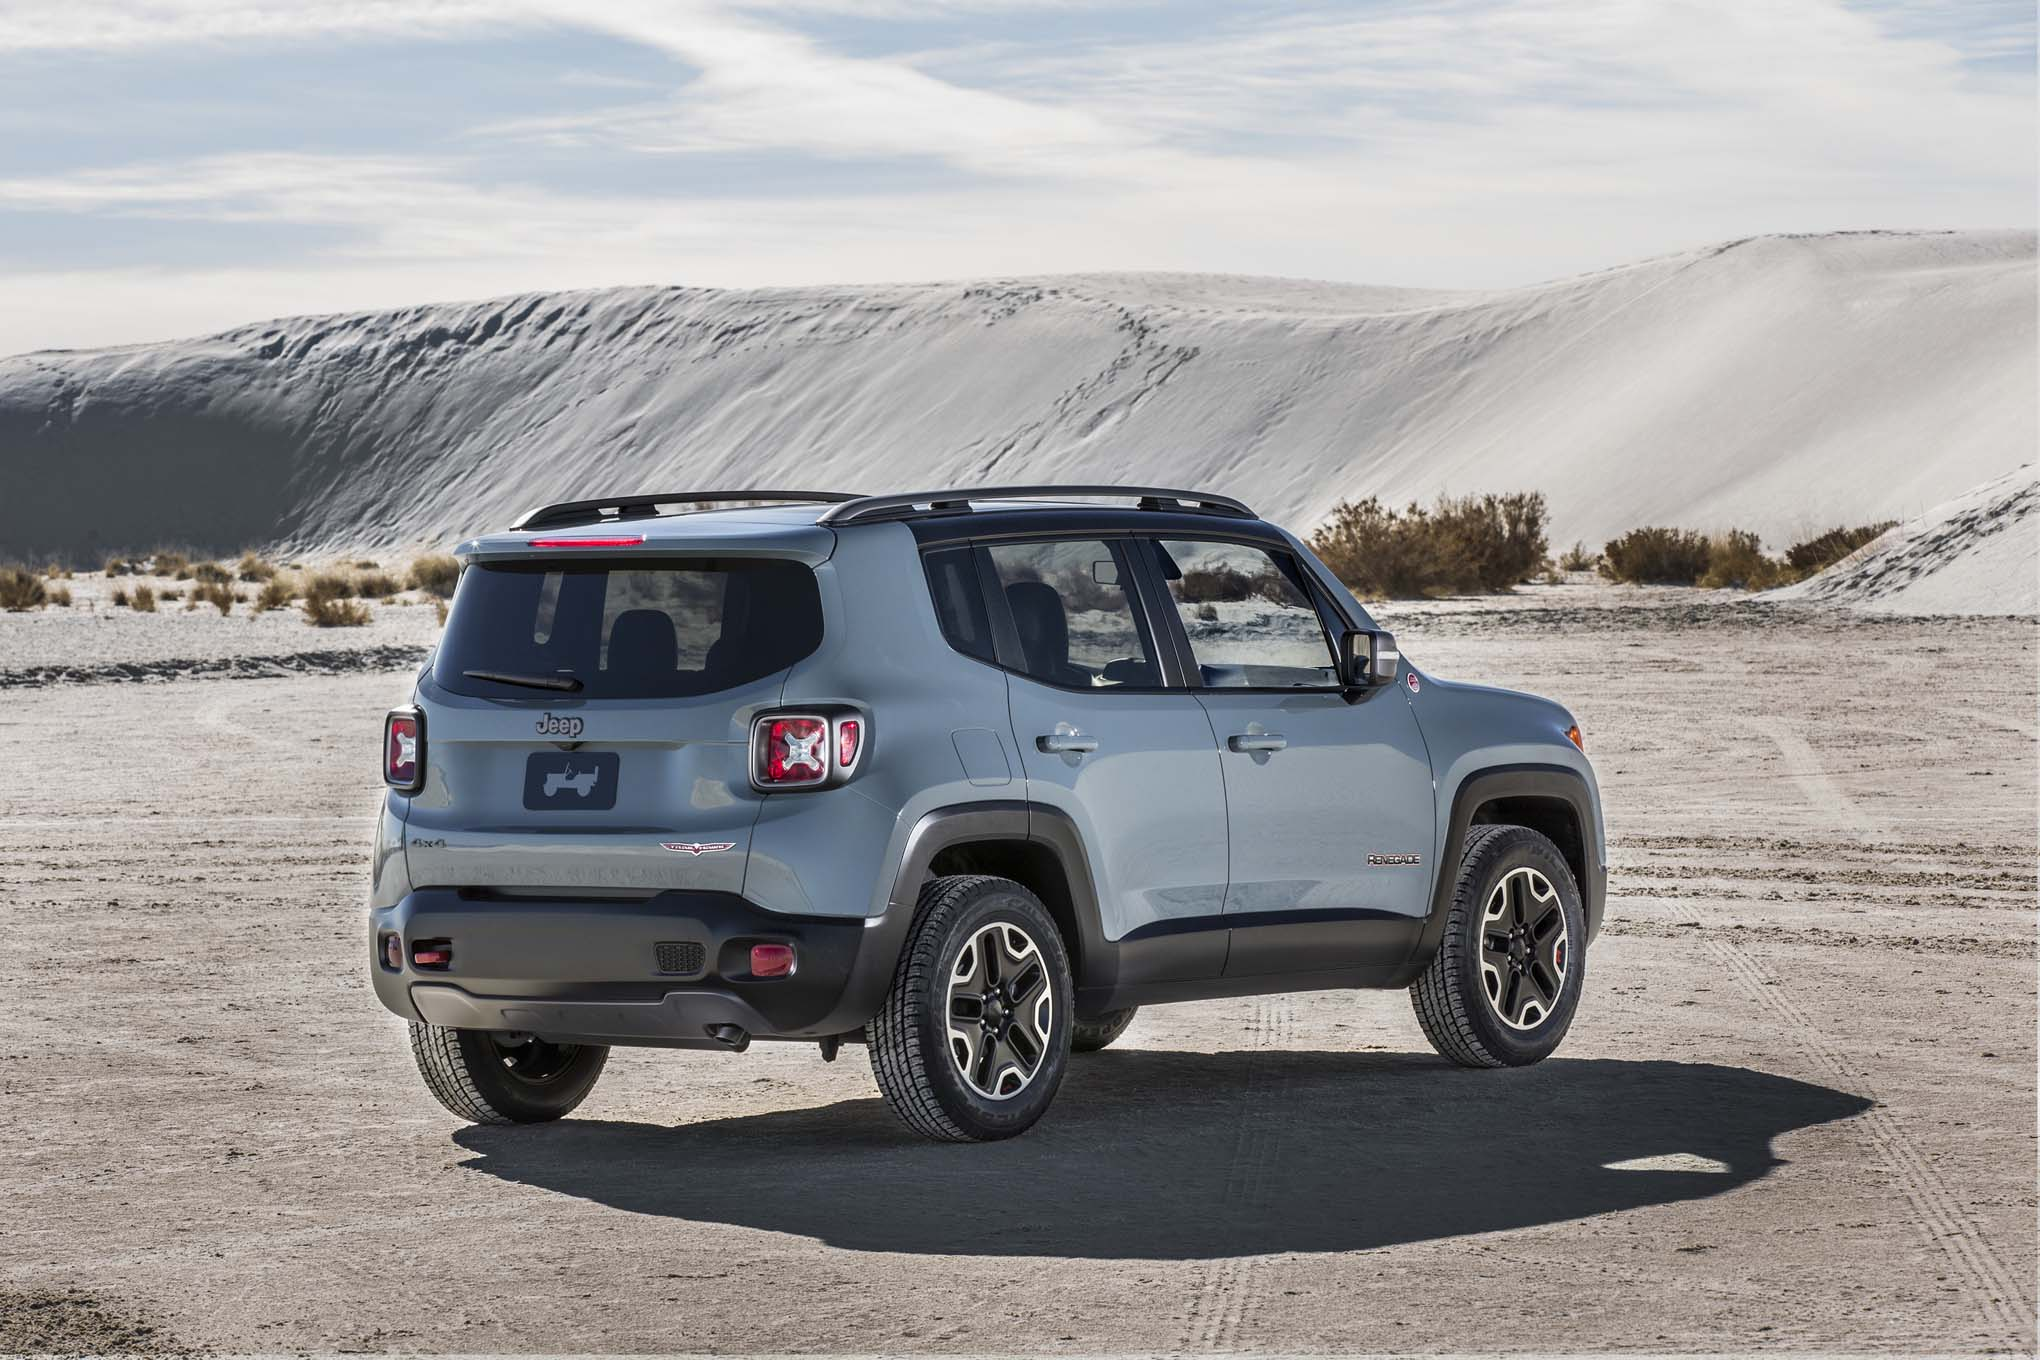 2015 Jeep Renegade Trailhawk rear three quarters